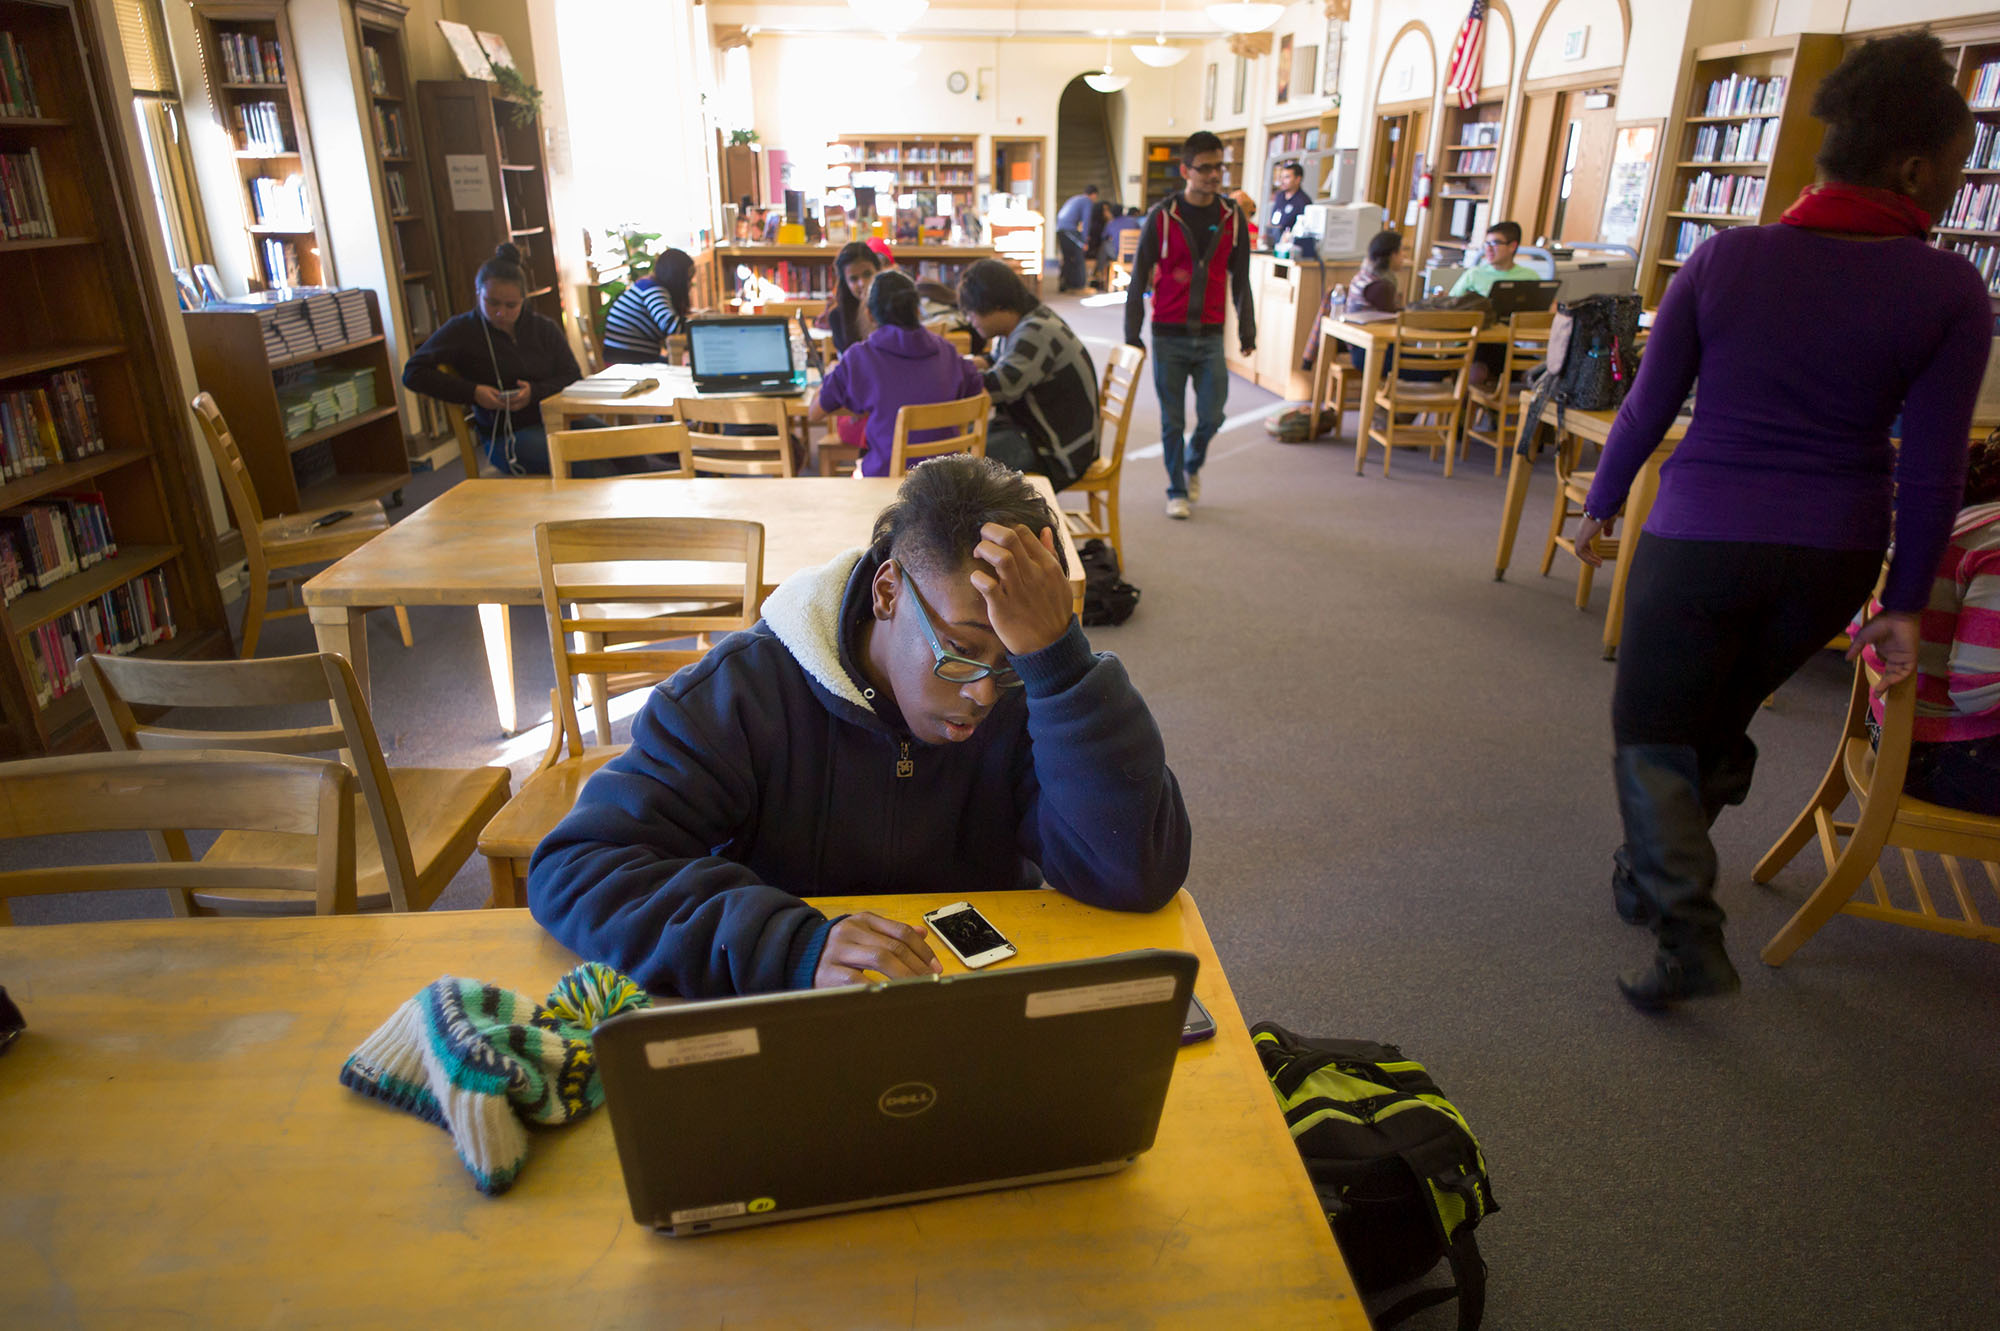 <p>Chaunse Dyson fills out online university applications in the library at South High School in Denver on Thursday, Jan. 22, 2015.</p>